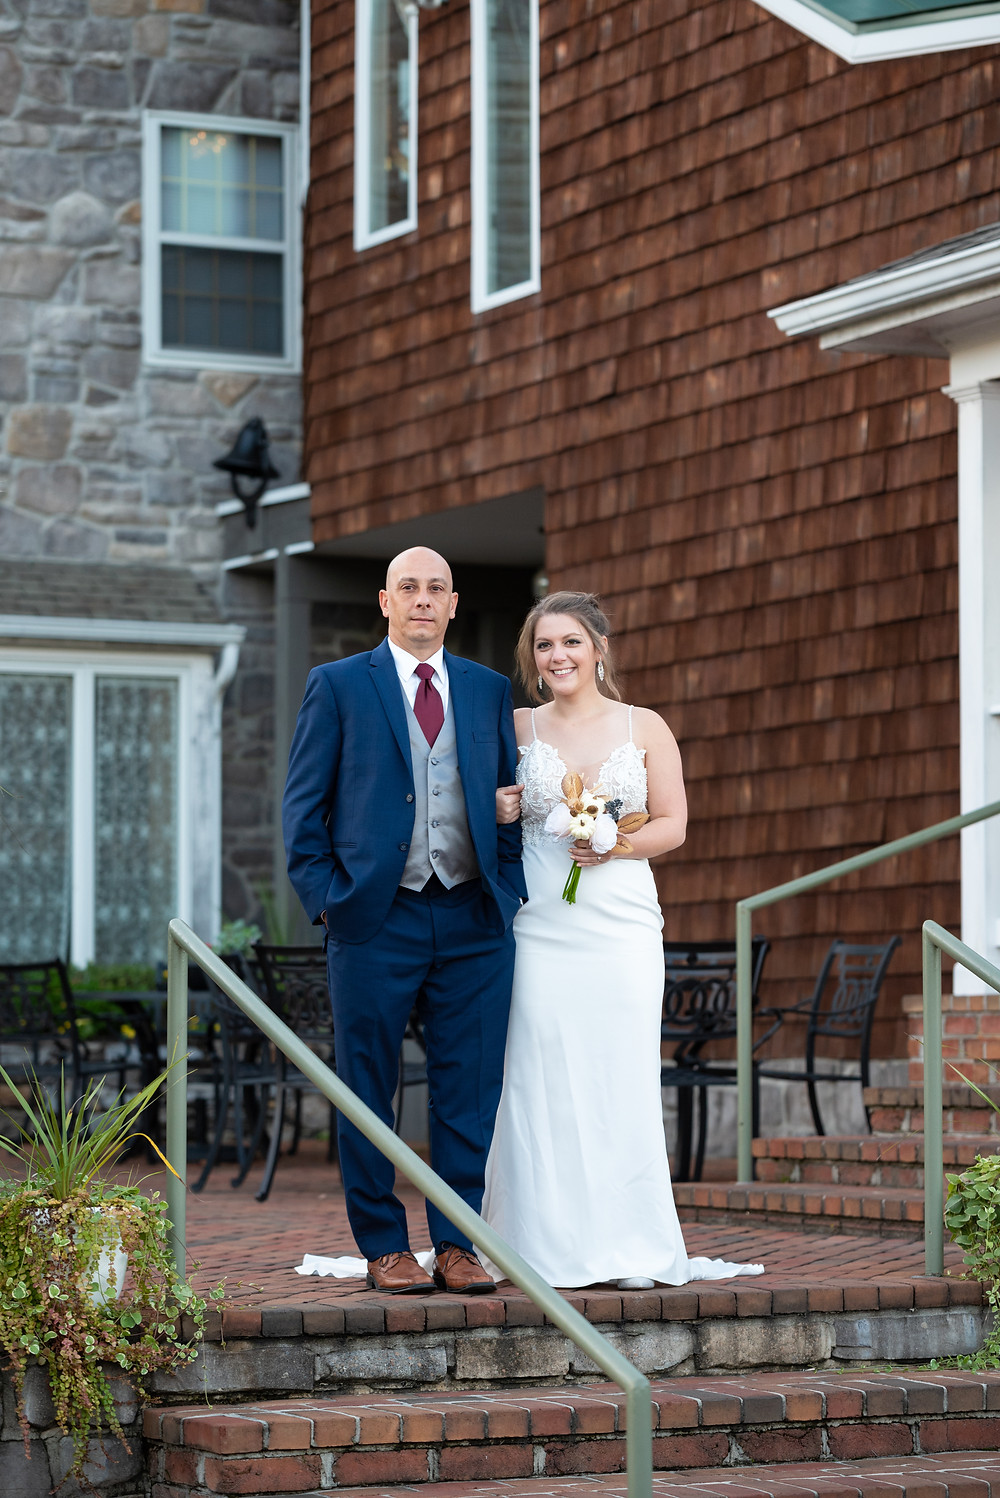 Father walking his daughter down the aisle at Morningside Inn during an outdoor fall ceremony